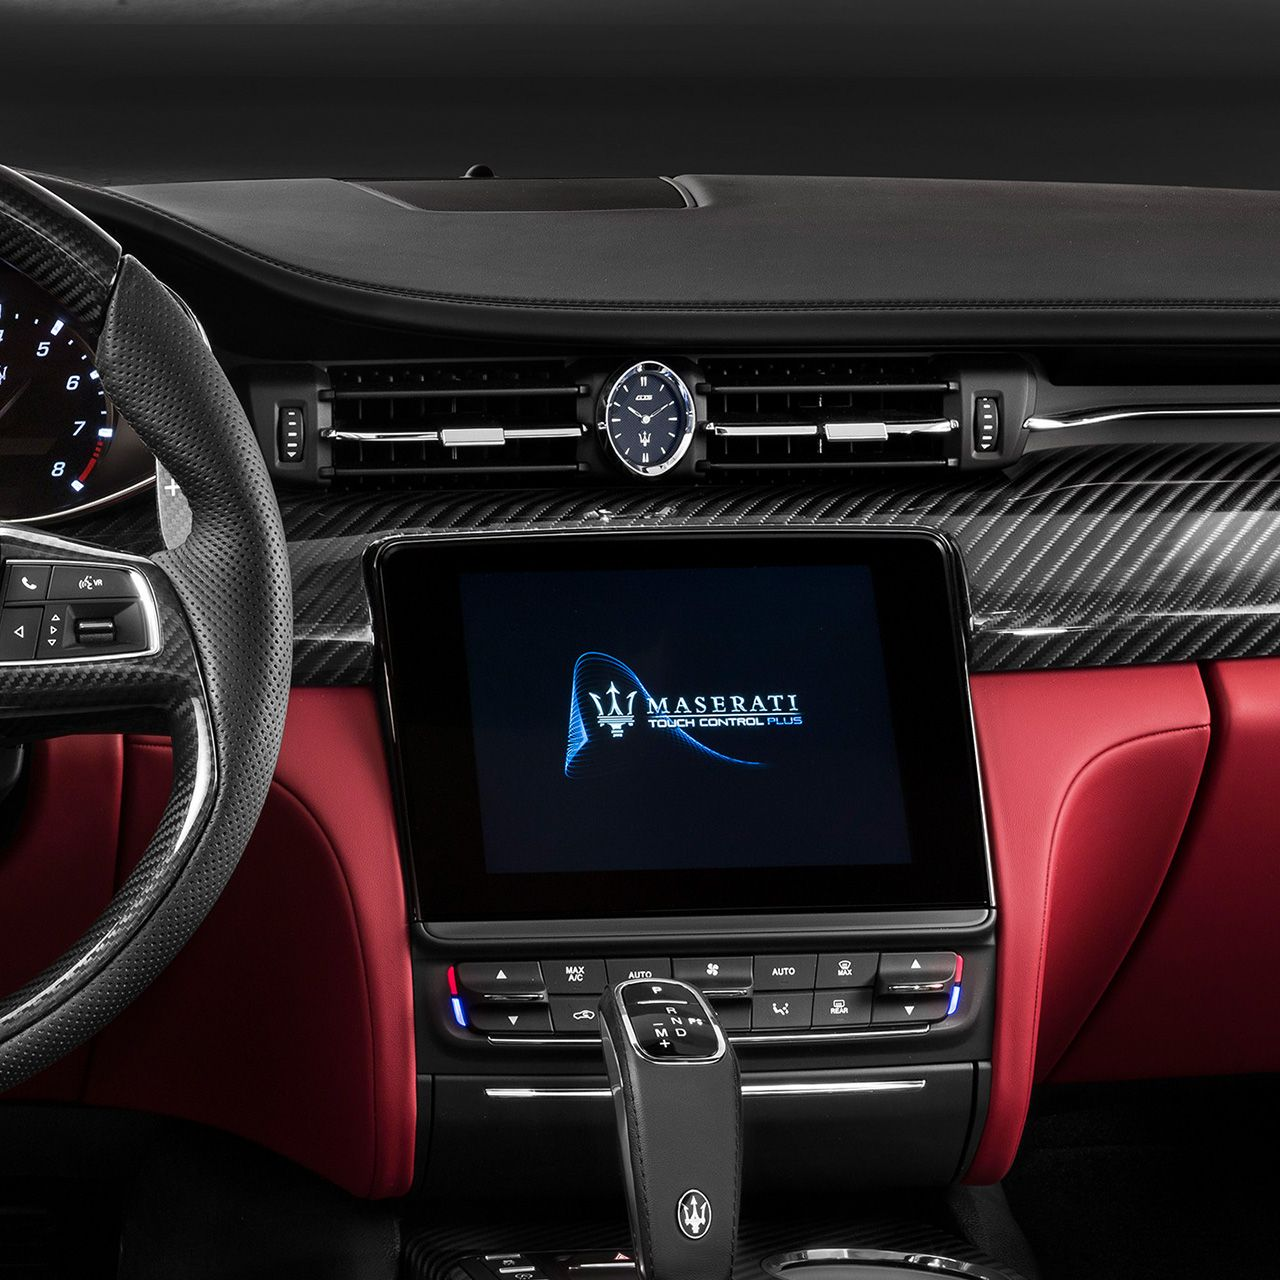 Maserati Quattroporte GTS - infotainment system, touchscreen display and dashboard